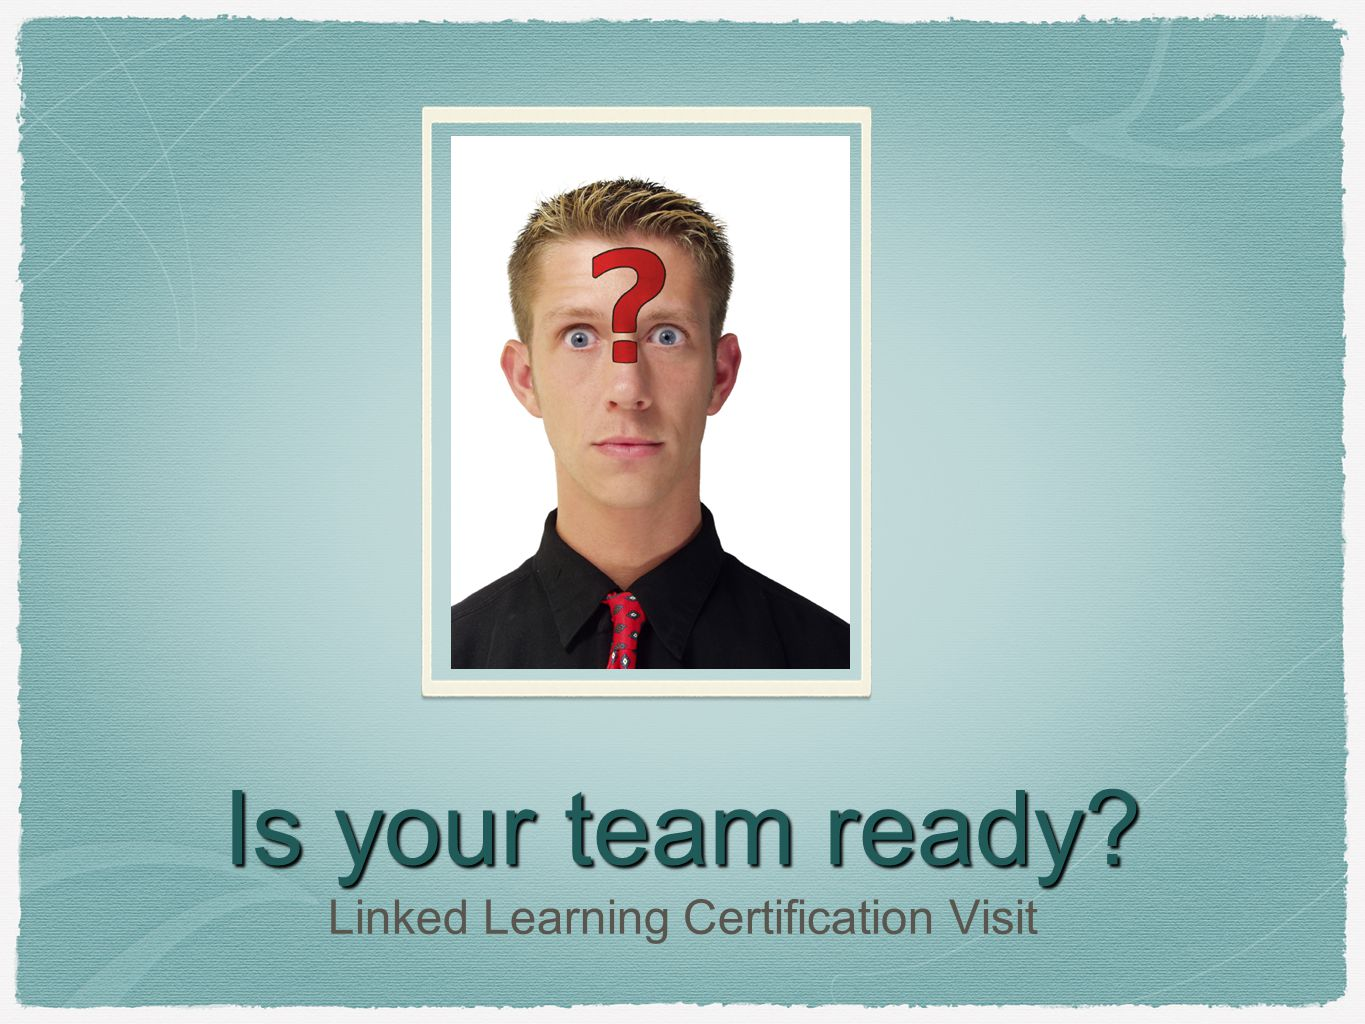 Is your team ready? Linked Learning Certification Visit